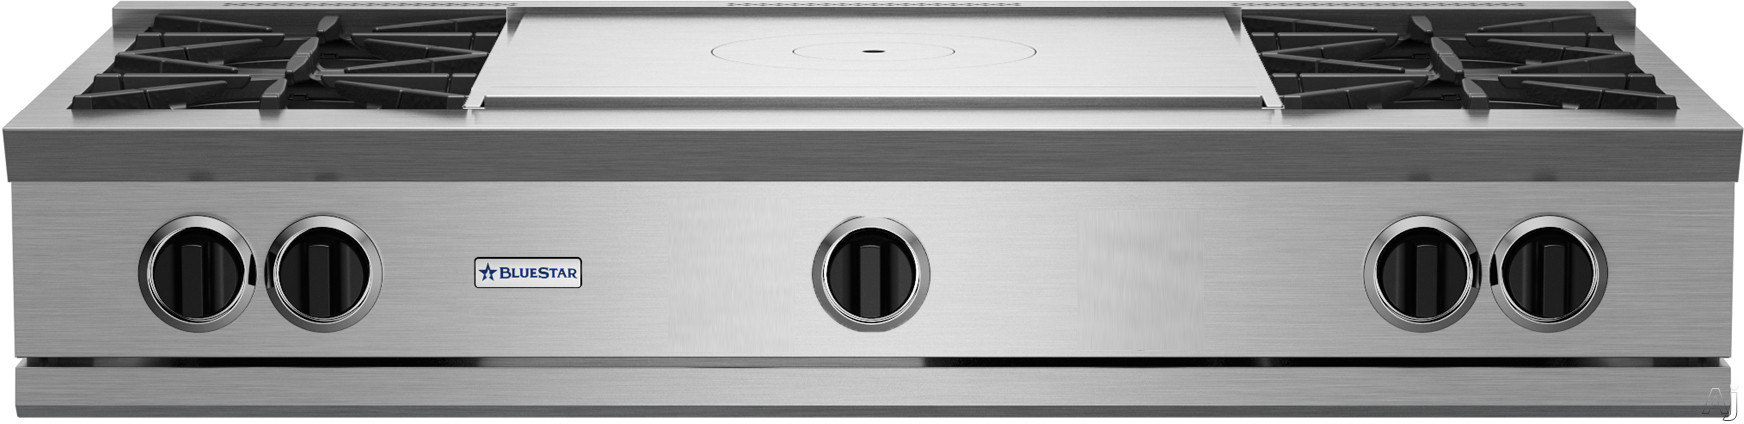 """BlueStar RGTNB Series RGTNB484FTBV2NG 48 Inch Gas Rangetop with 4 Open Burners, 22,000 BTU Power Burners, Simmer Burner, 24"""" French Top and Single Point Spark Ignition: Natural Gas"""